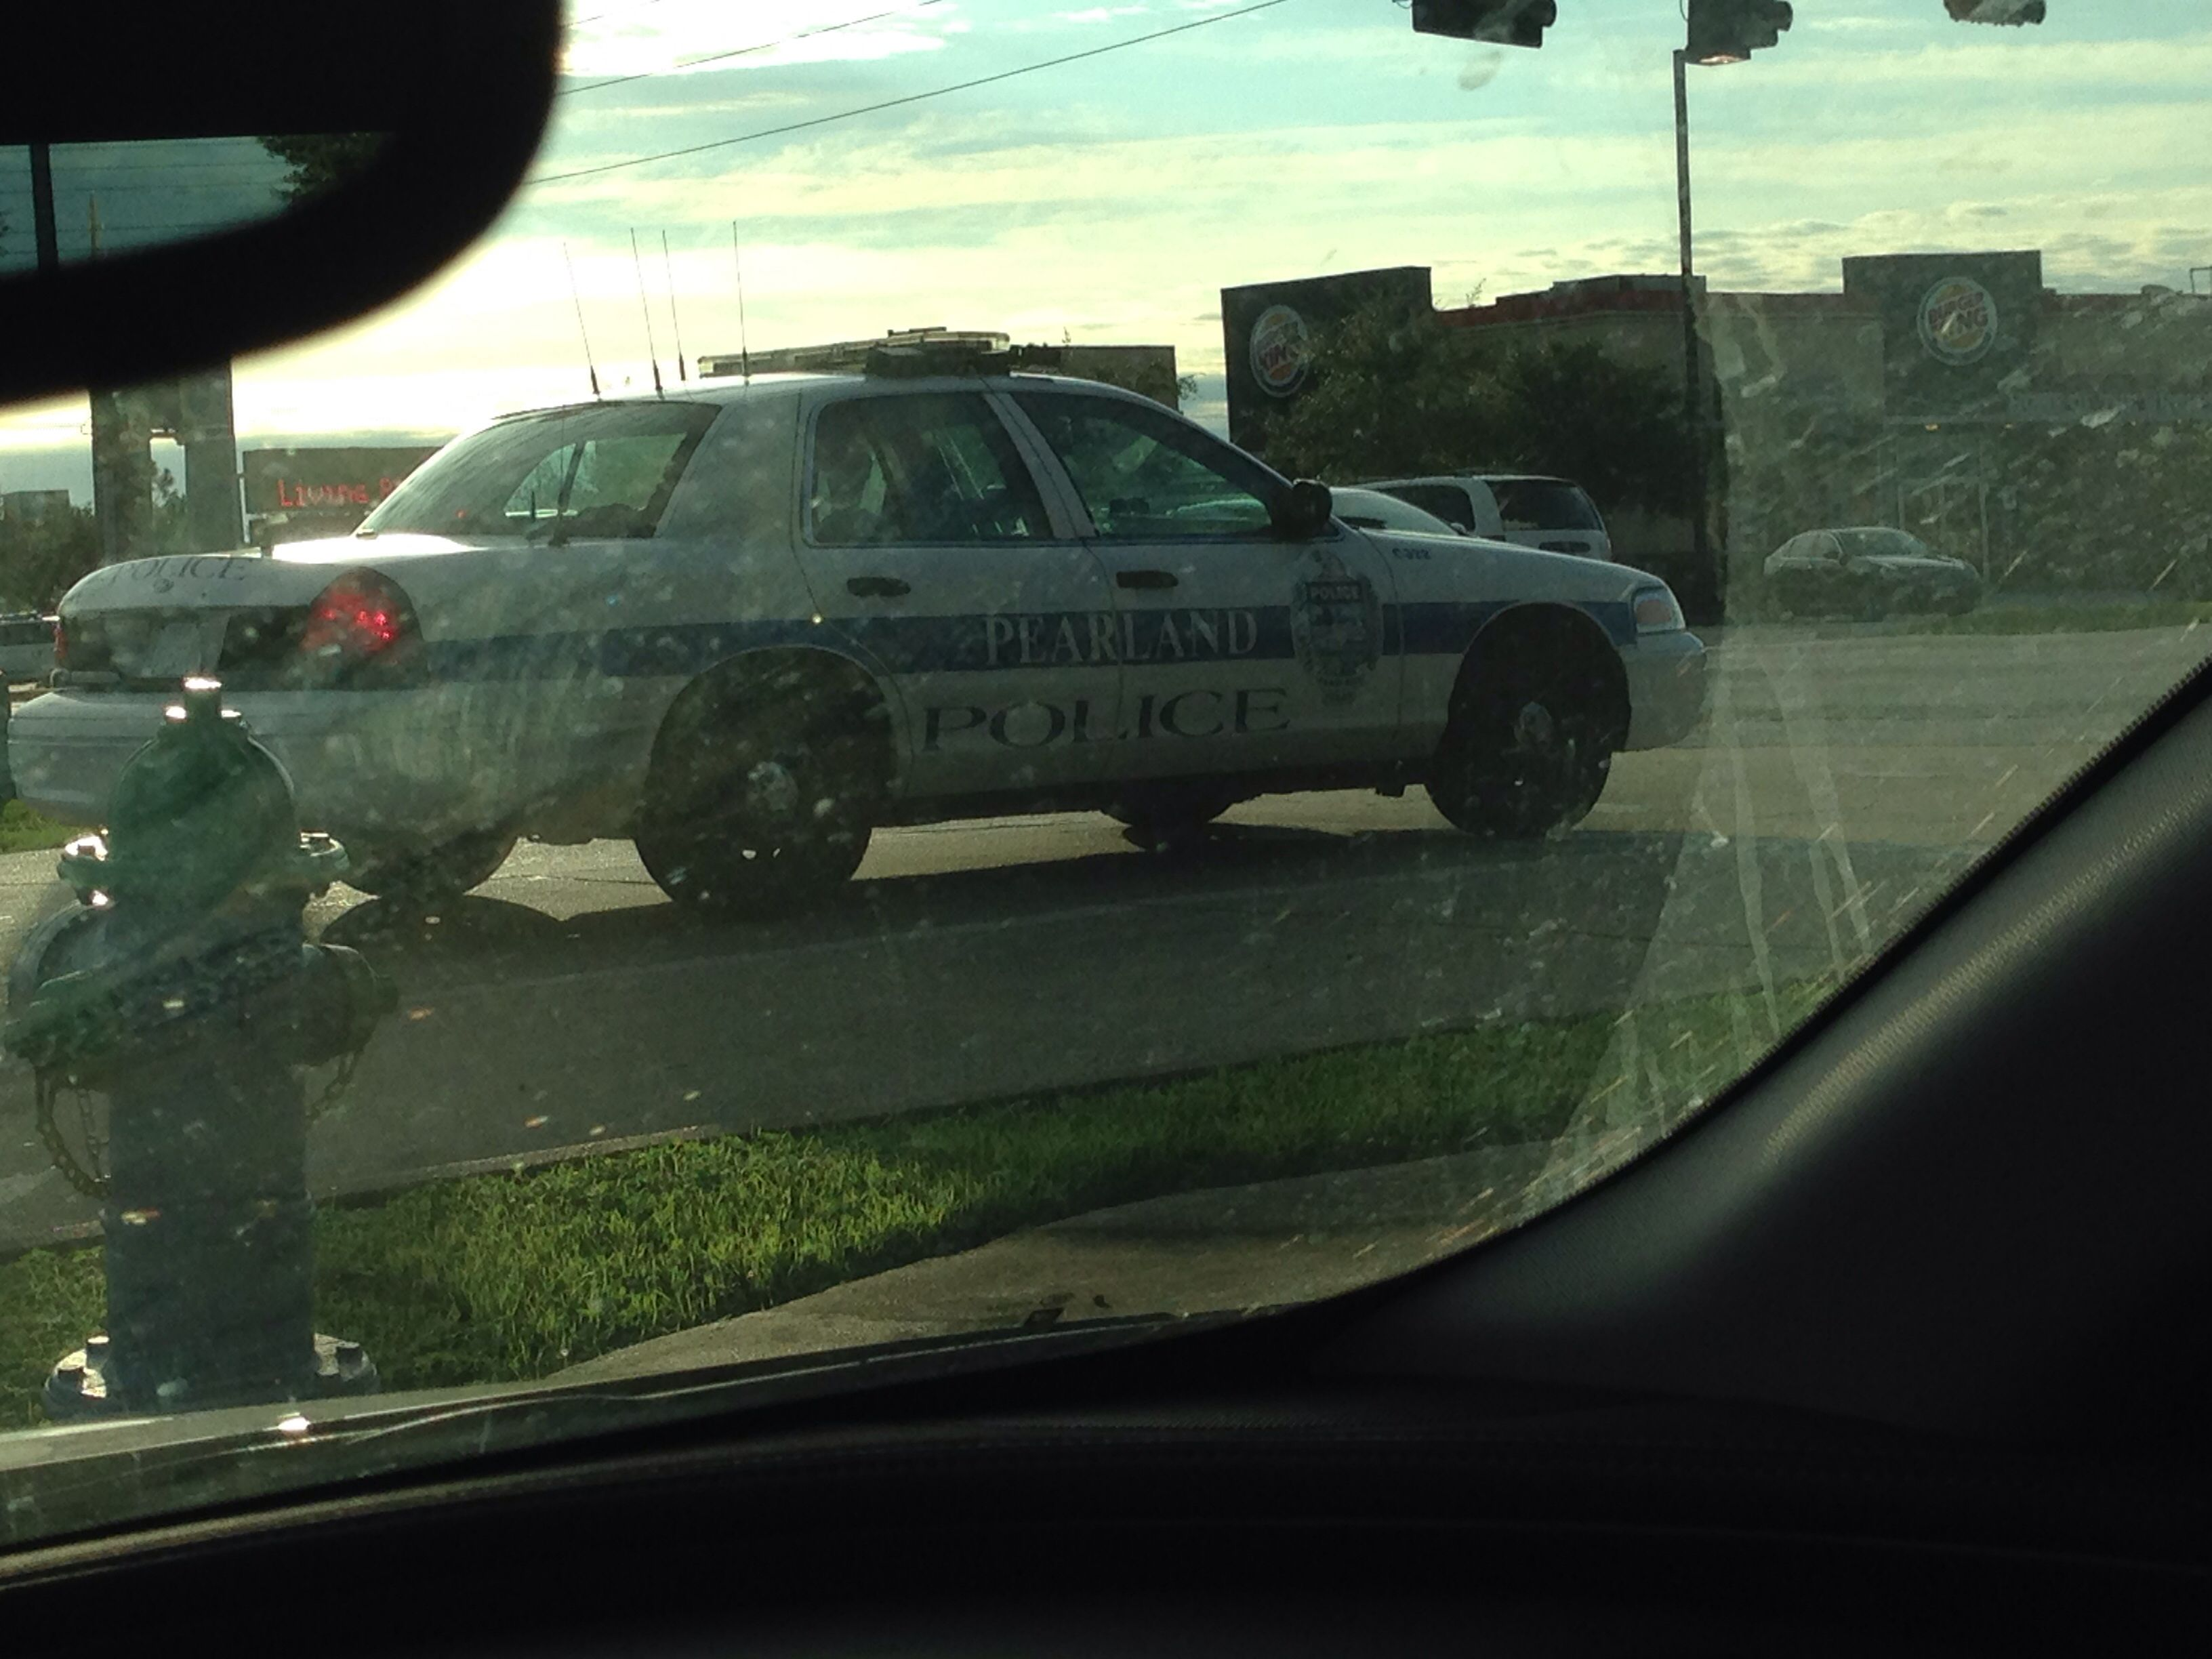 Pearland Police Ford Crown Victoria Texas Police Police Cars Ford